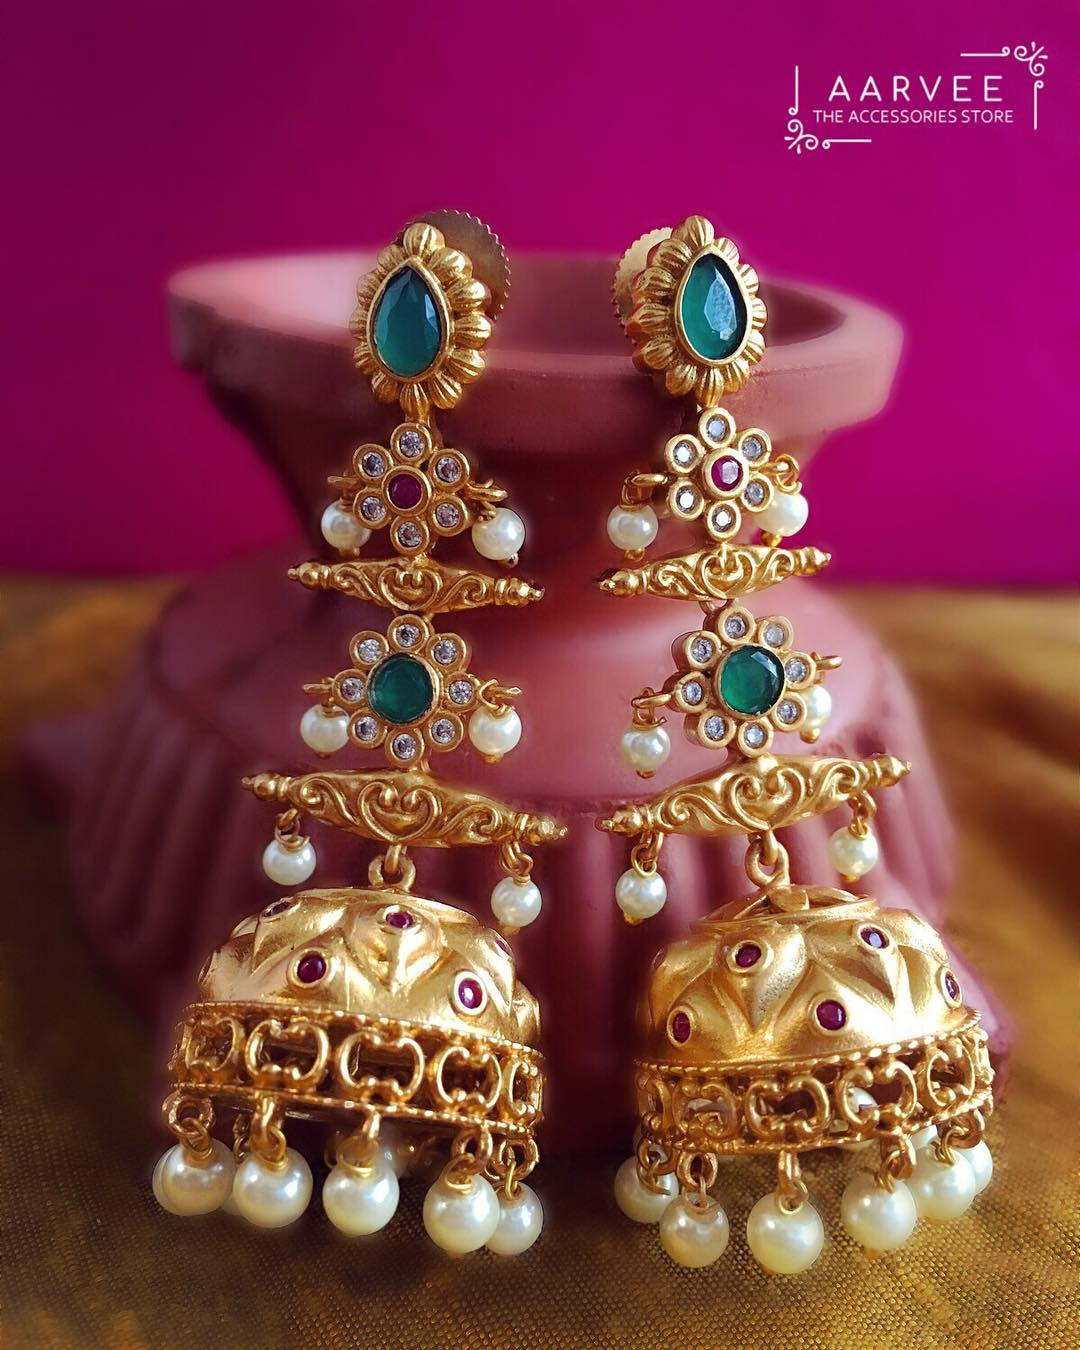 Antique Jhumka From Aarvee Chennai